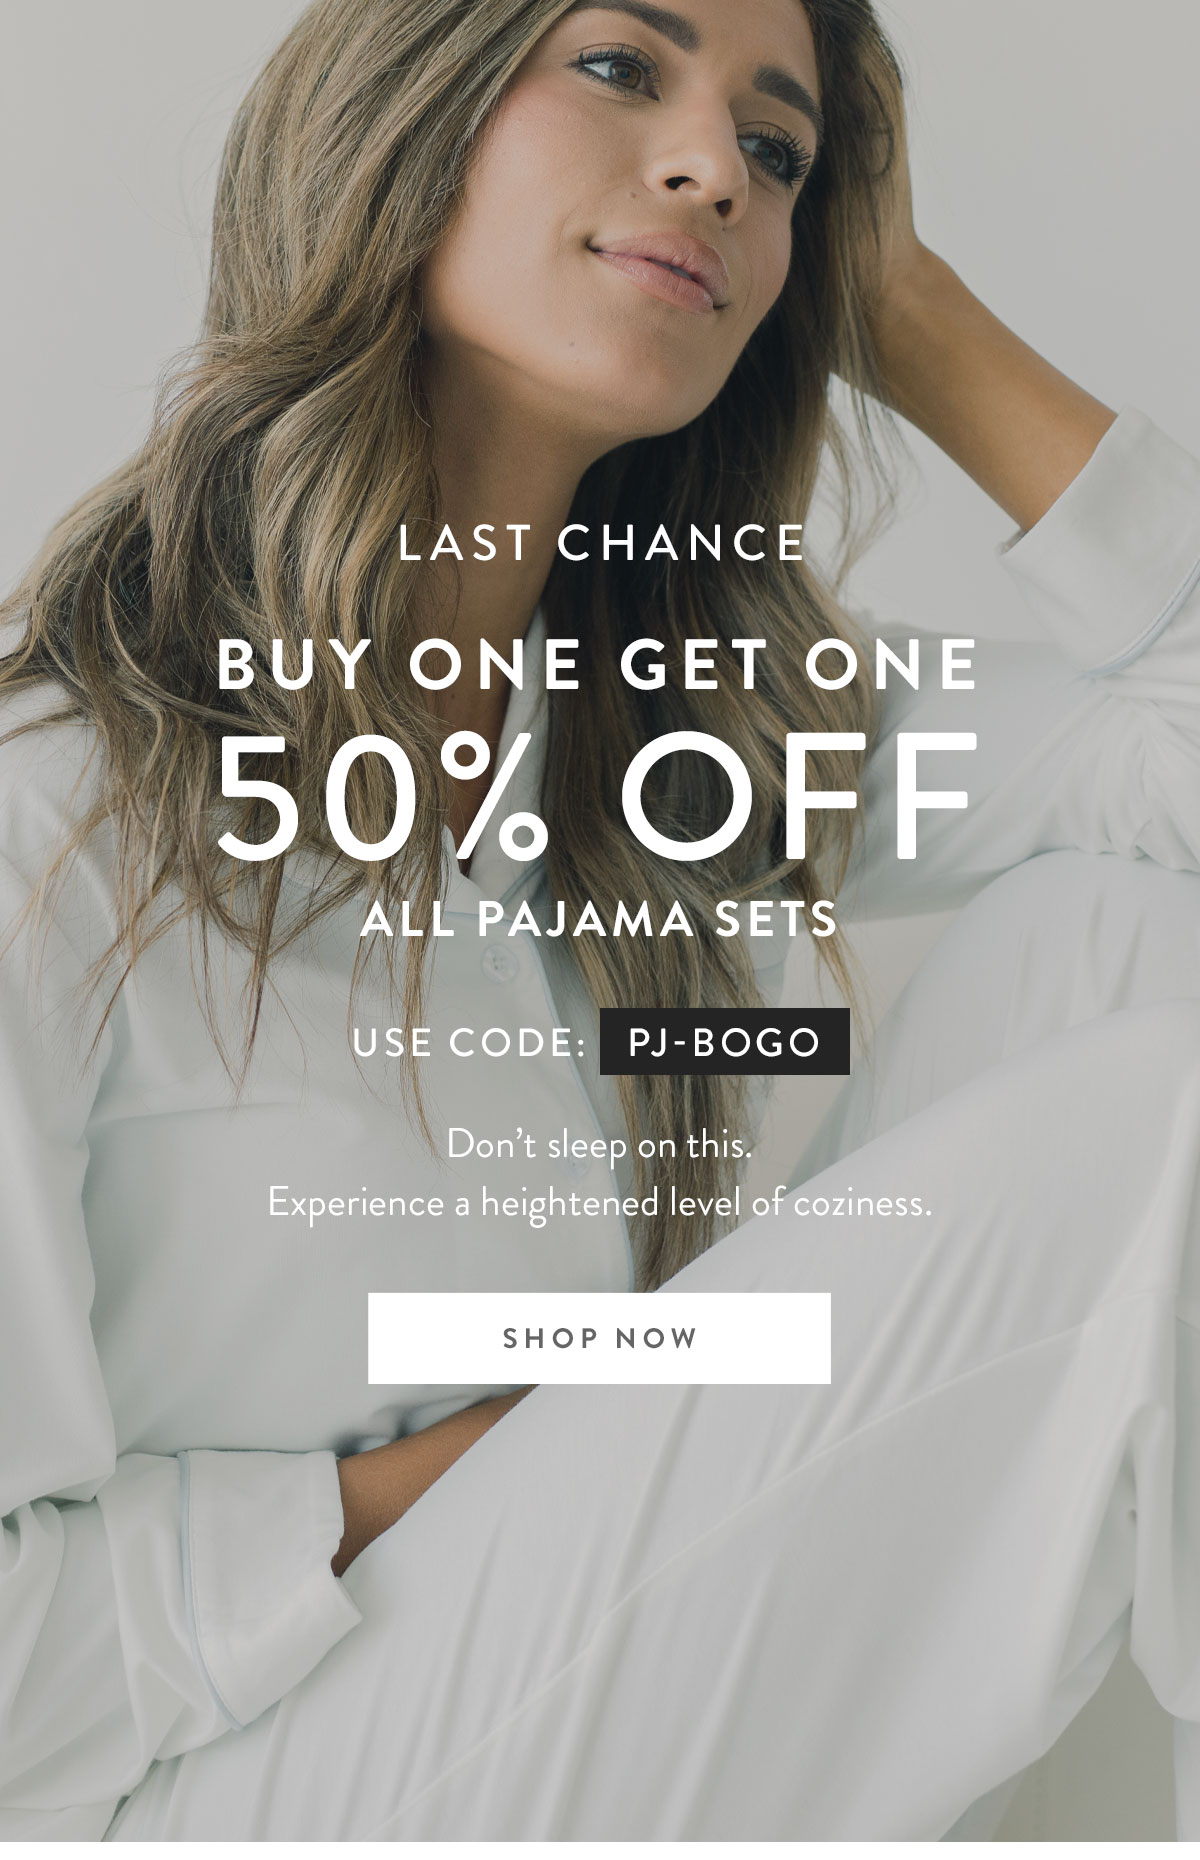 LAST CHANCE | BUY ONE GET ONE 50% OFF ALL PAJAMA SETS | USE CODE: PJ-BOGO | Don't sleep on this. Experience a heightened level of coziness. | SHOP NOW